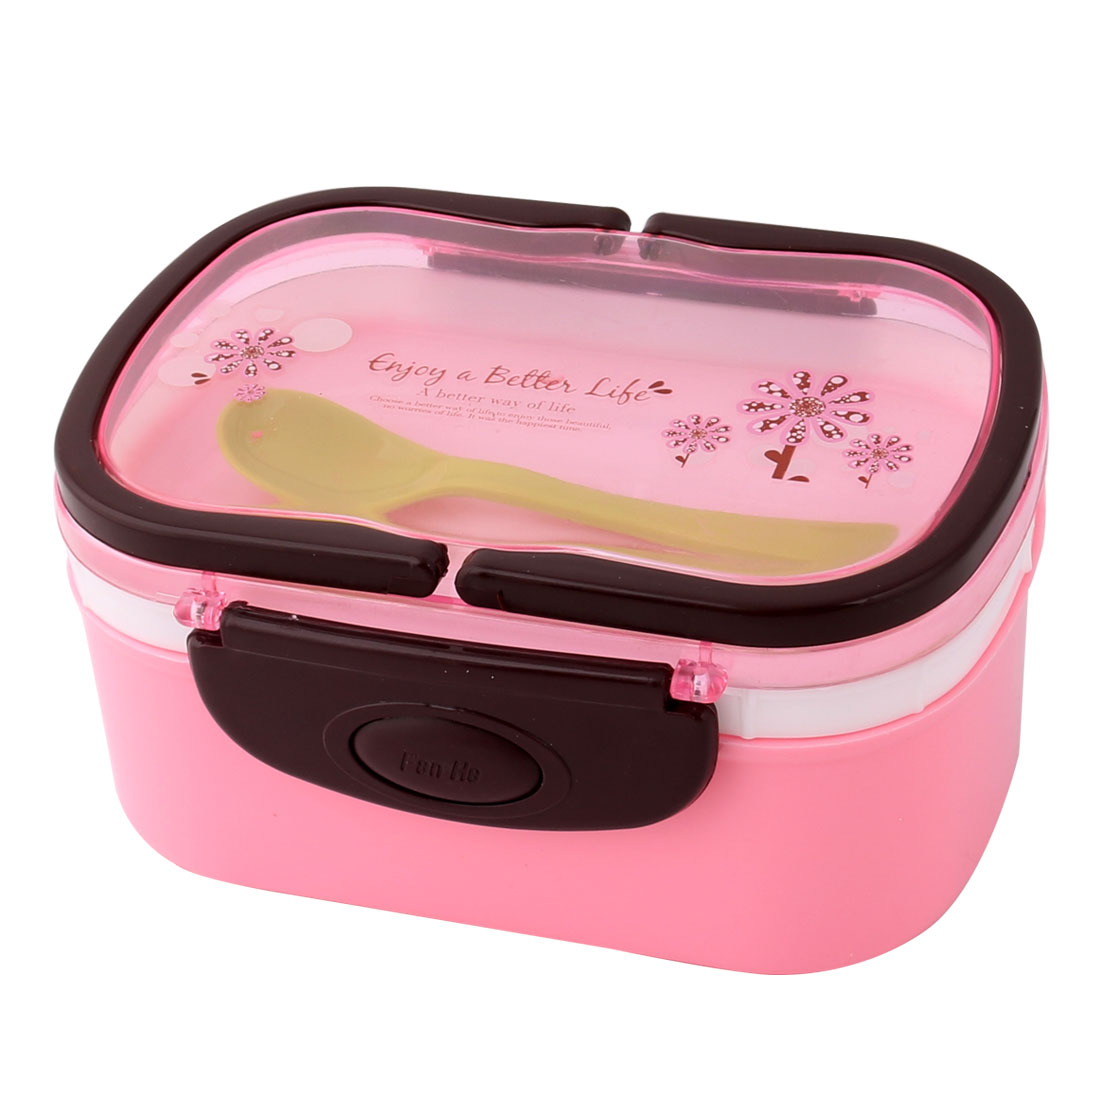 Household Outdoor Plastic Flower Pattern Handle Food Container Lunch Box Pink